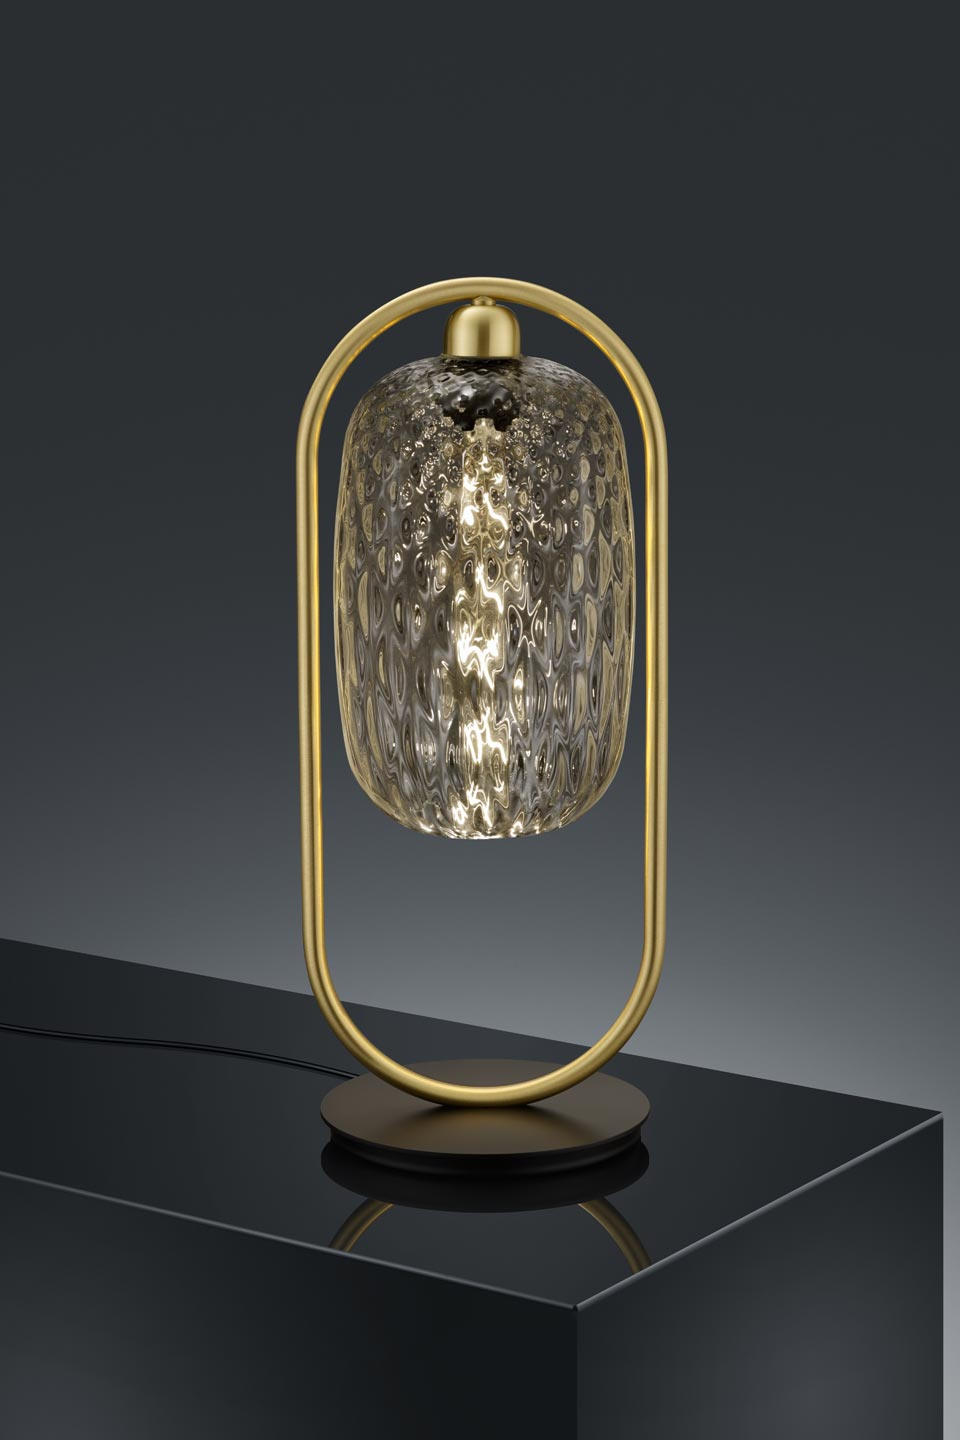 Leuchten Bilder Design Golden Table Lamp And Transparent Glass: Baulmann Leuchten Luxury Lightings Made In Germany - Réf. 19030126